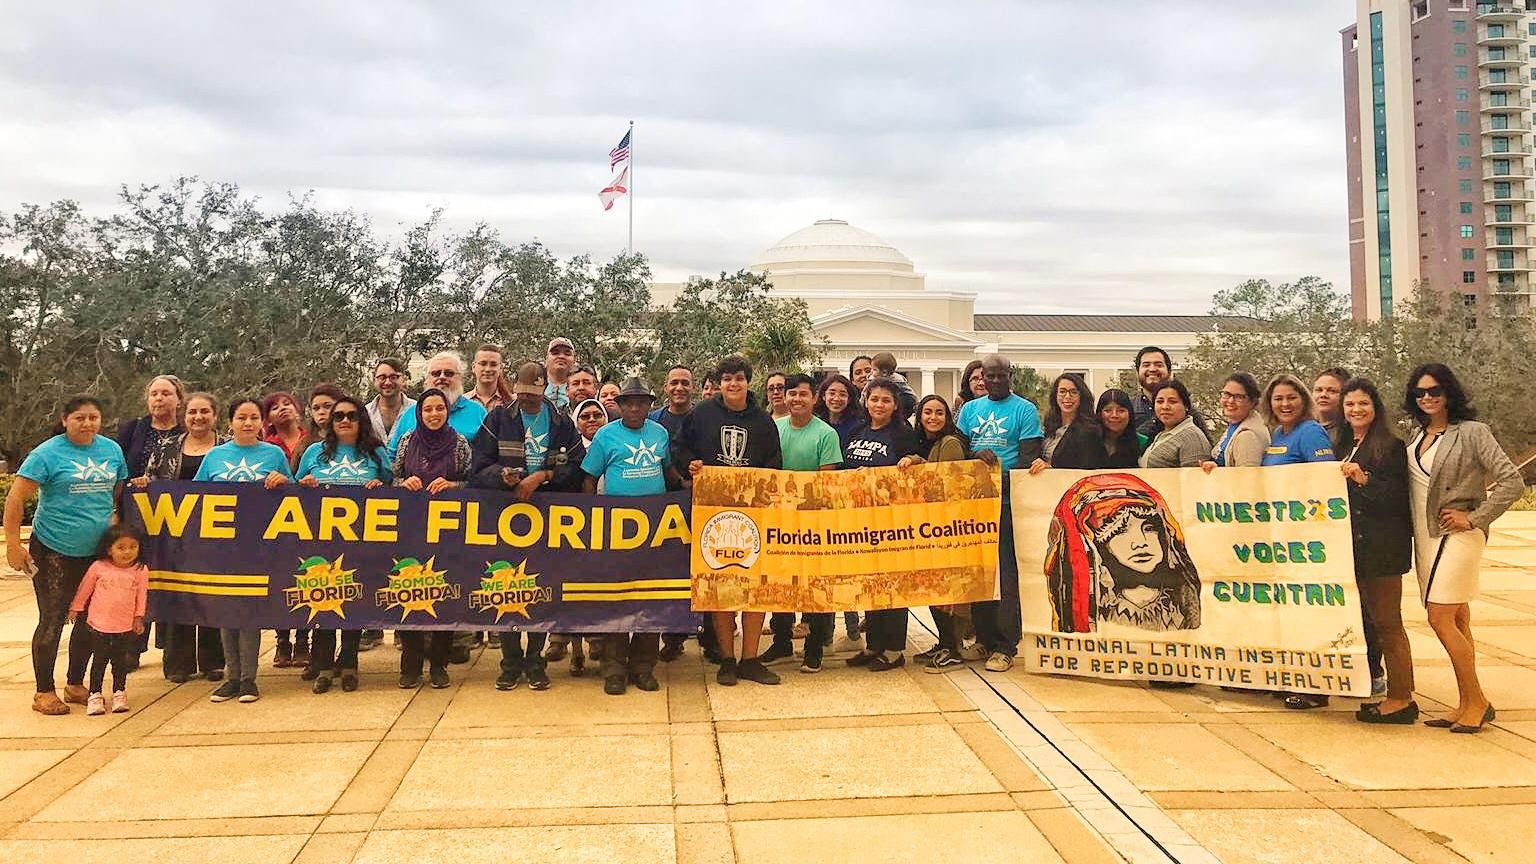 We Are Florida activists